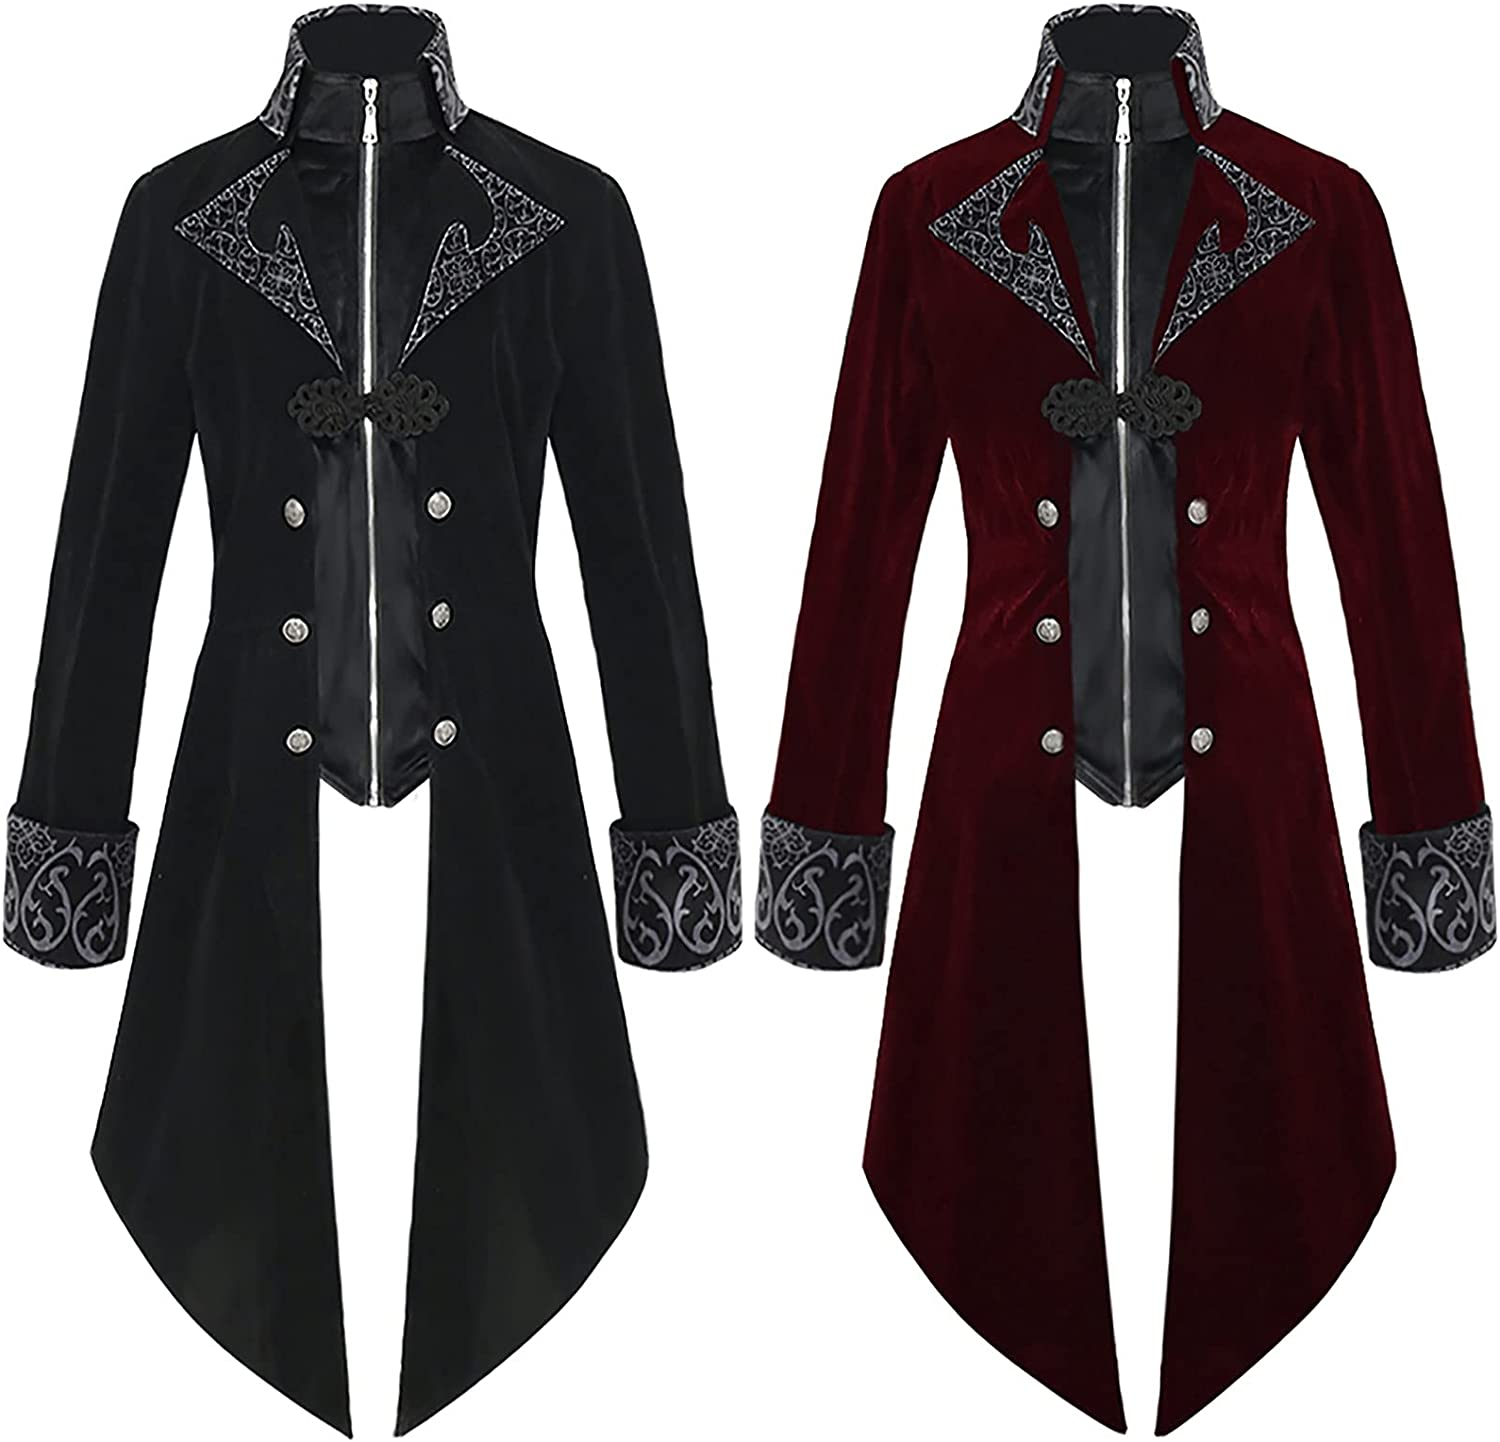 free shipping Medieval Steampunk supreme Tailcoat Halloween Men for Renaissa Costumes